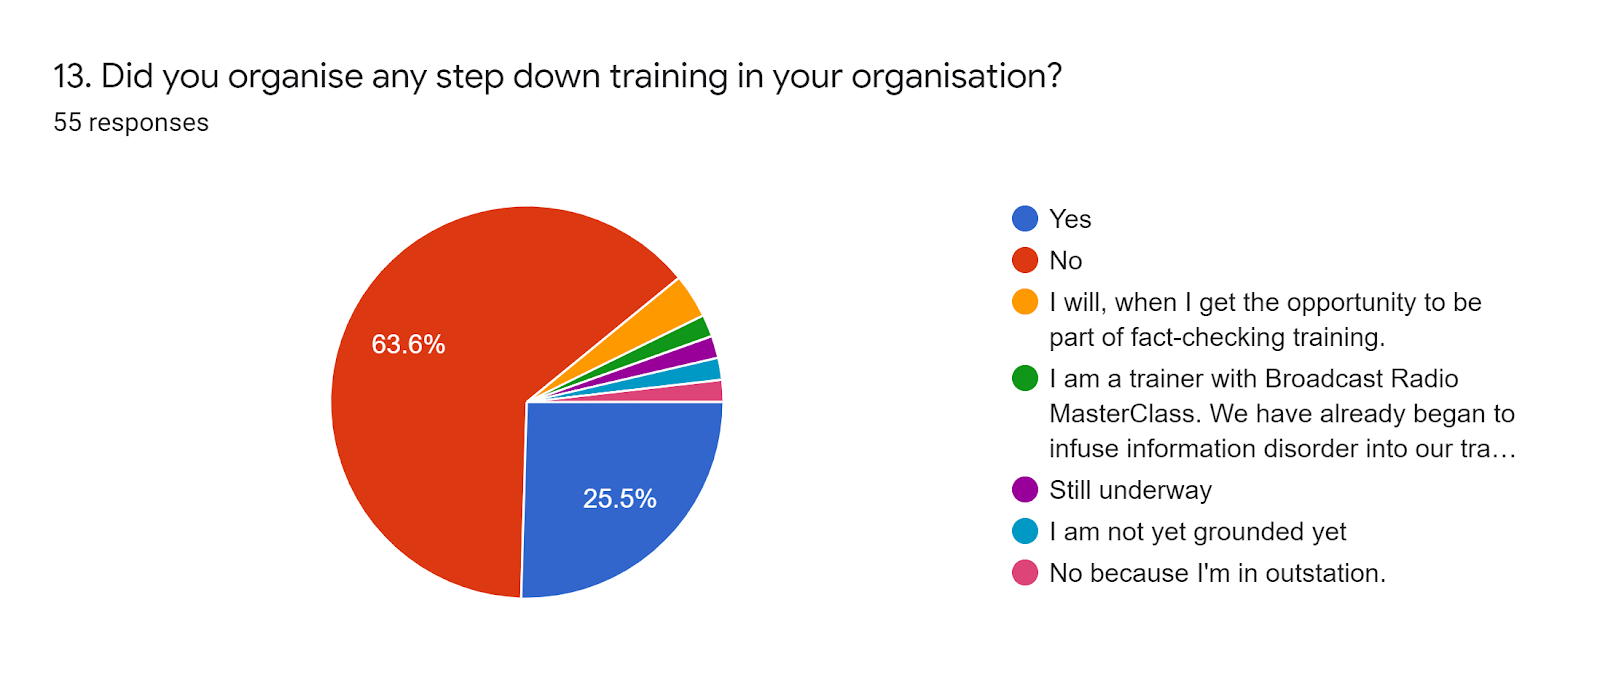 Forms response chart. Question title: 13. Did you organise any step down training in your organisation?. Number of responses: 55 responses.